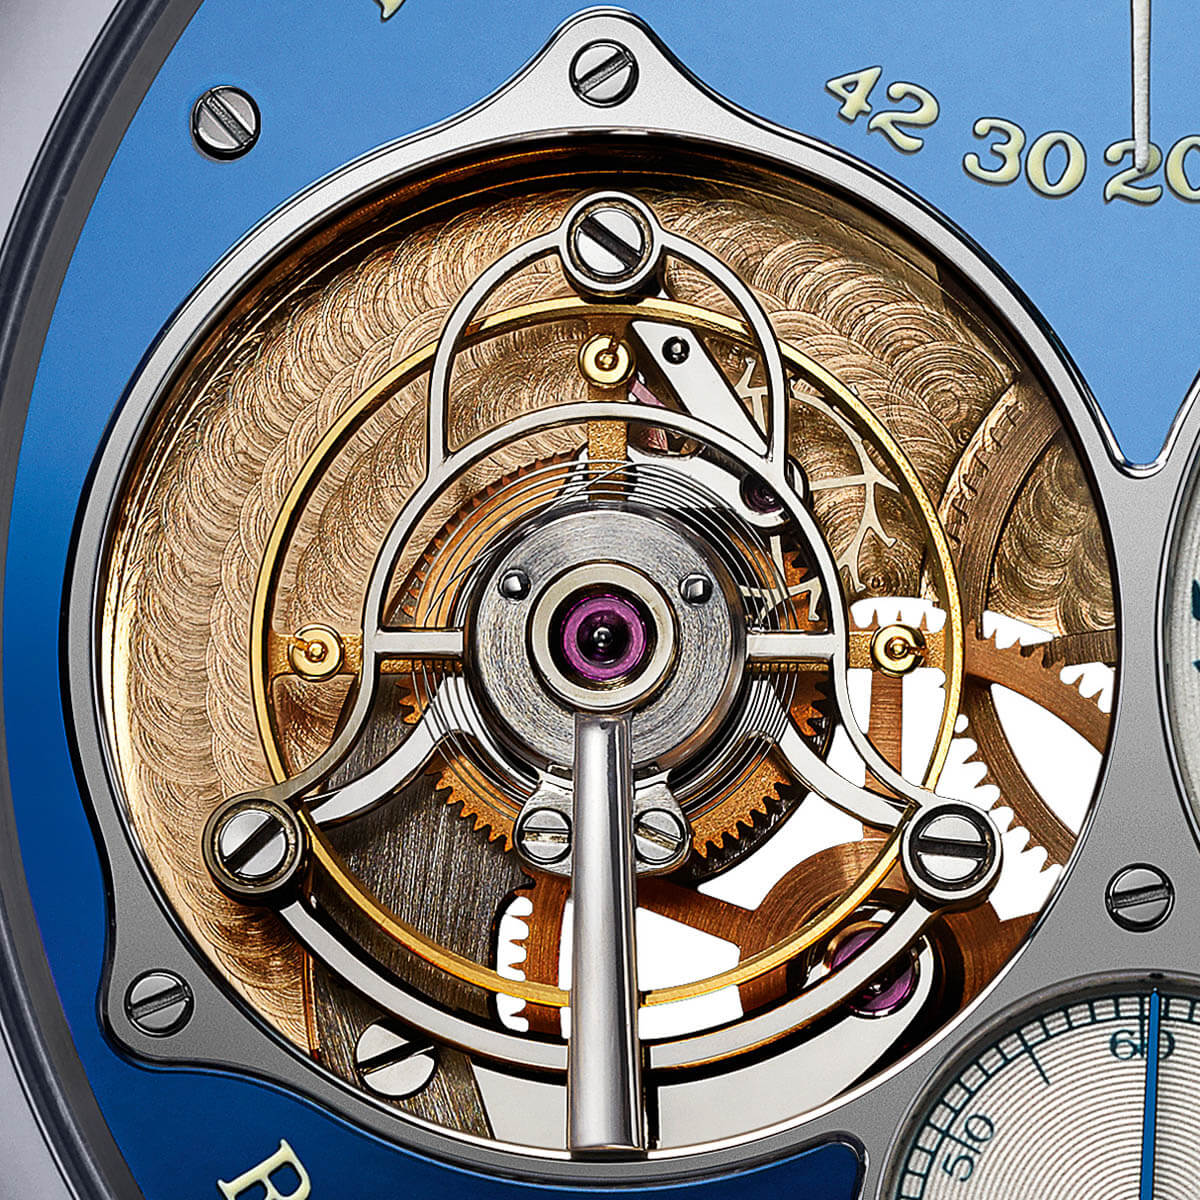 FP Journe Tourbillon Souverain Blue tantalum Only Watch 2015 - 4